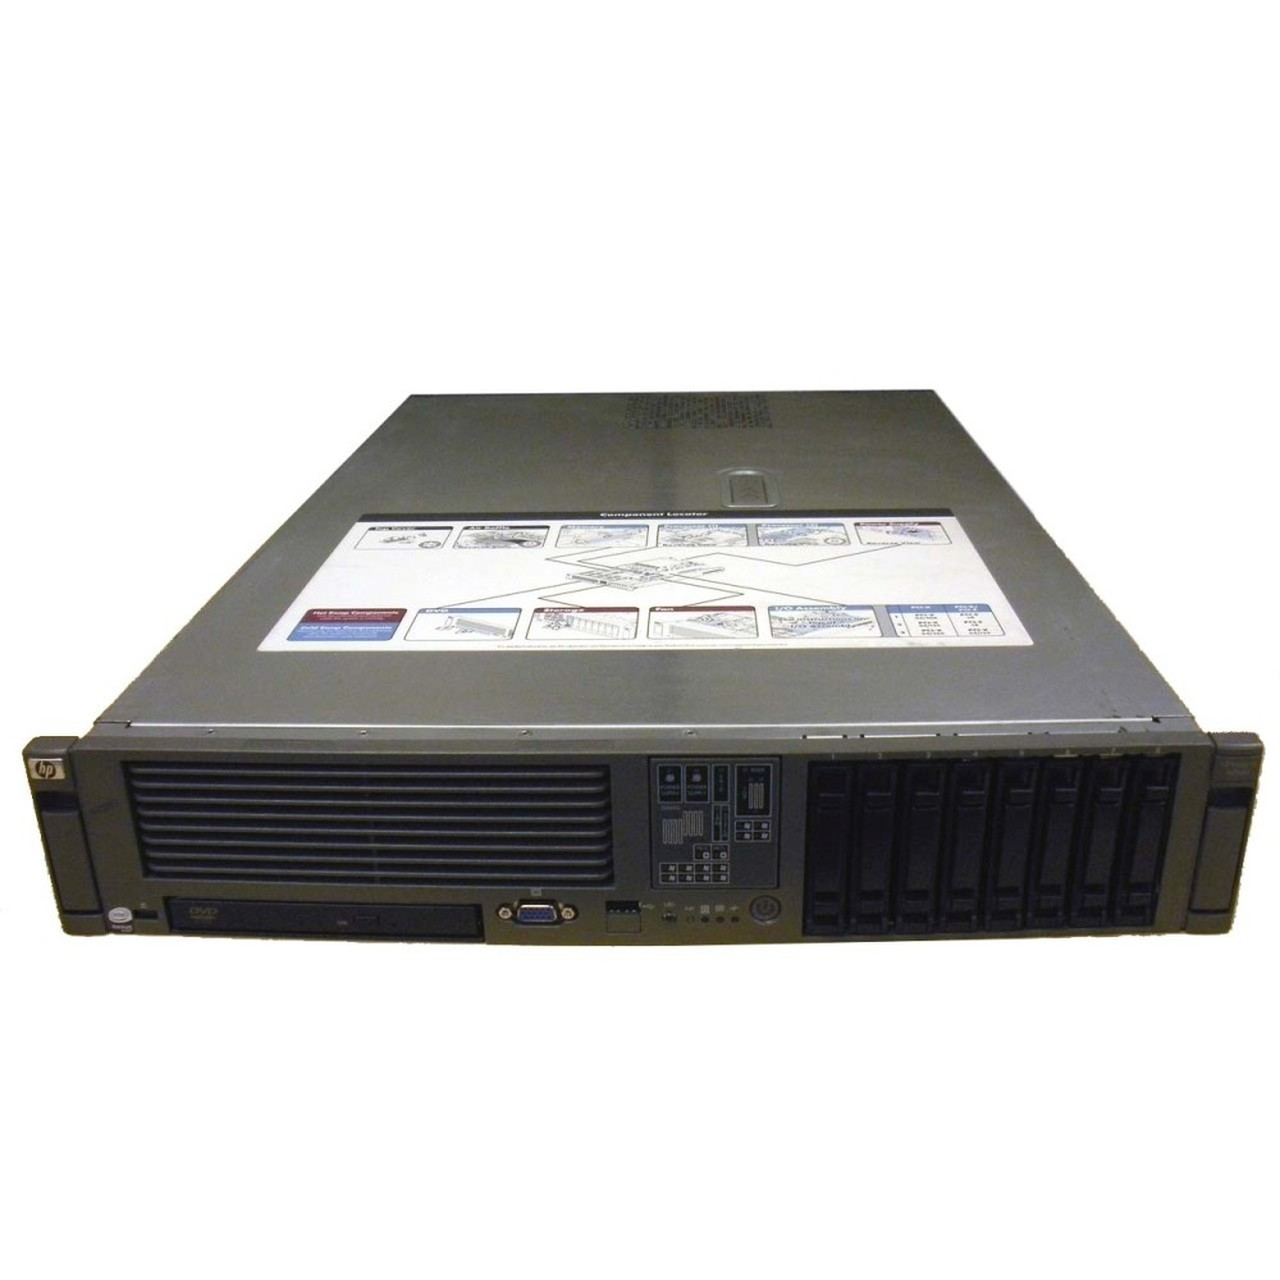 Buy & save on refurbished HP / HPE Integrity rx2660 Servers from your trusted partners at Flagship Technologies